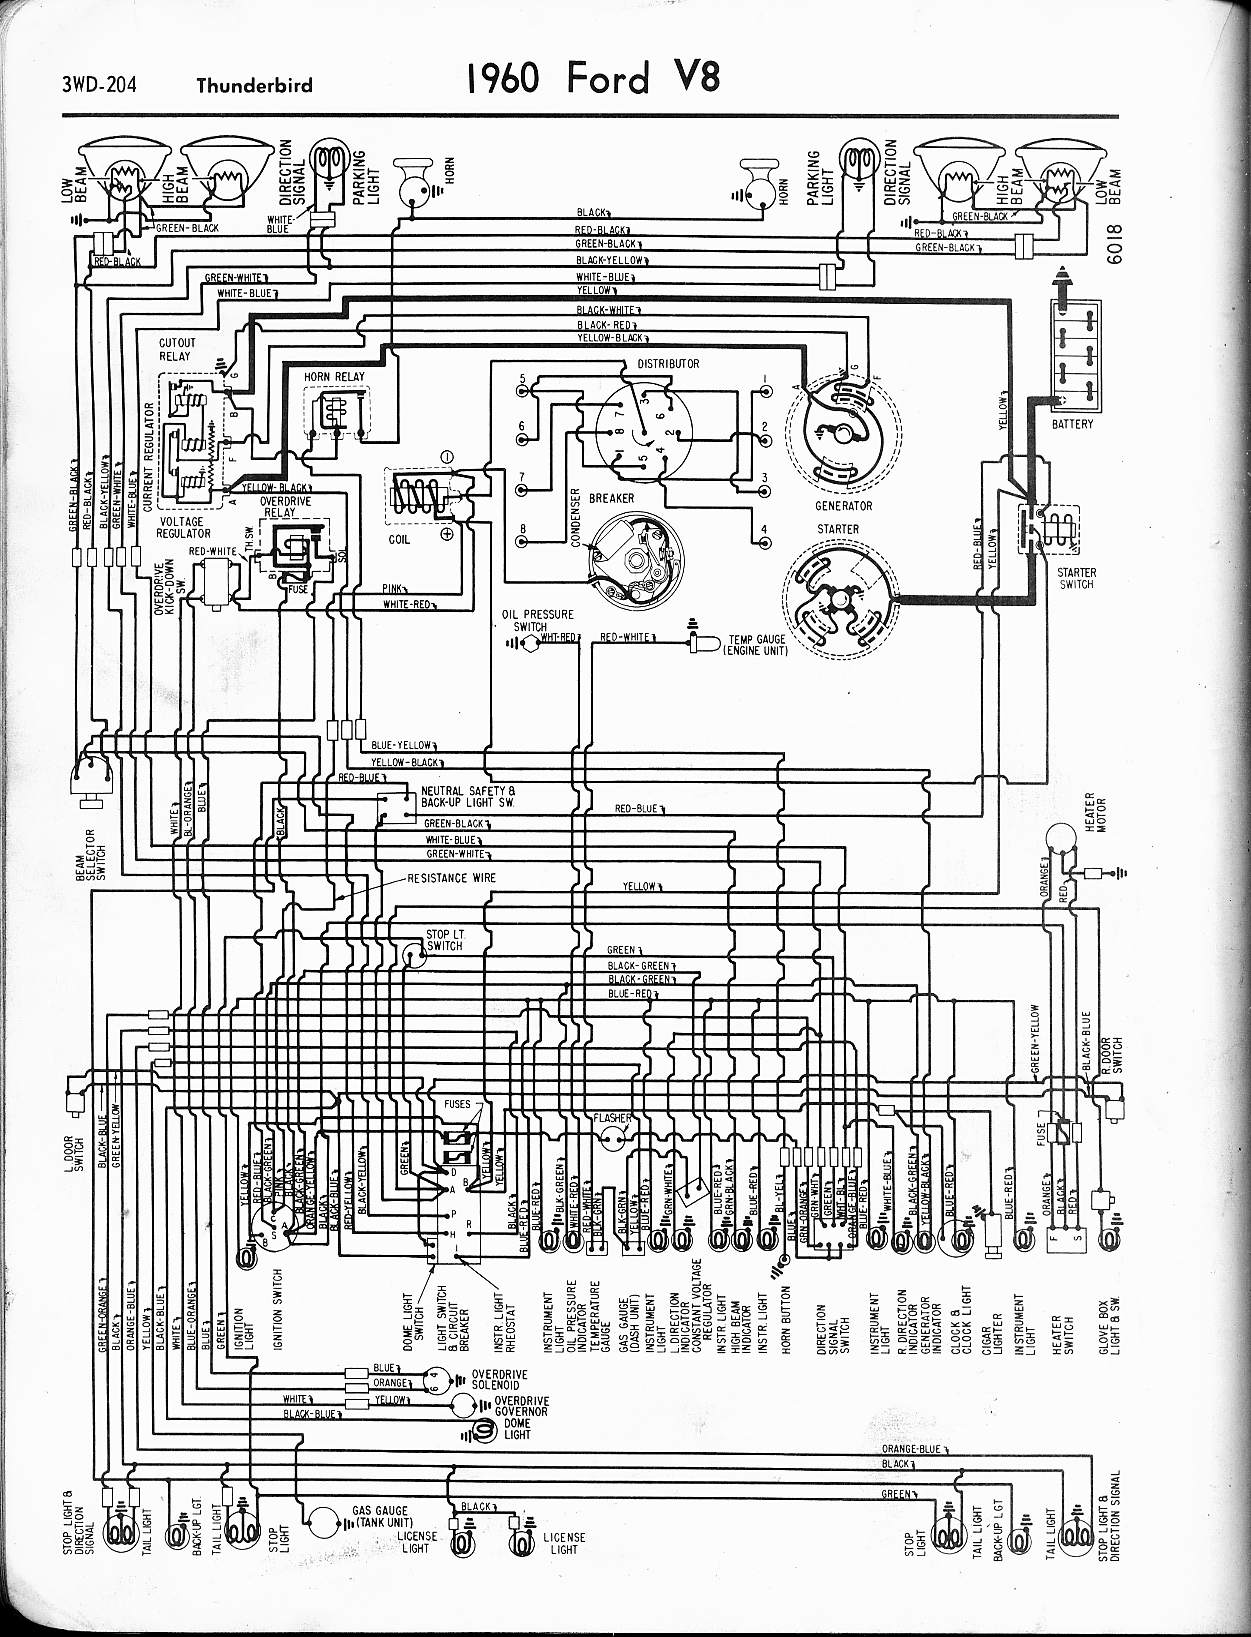 1965 ford thunderbird wiring diagrams wire center u2022 rh ayseesra co 1956 Ford Thunderbird Wiring Diagram 1966 Ford Mustang Wiring Diagram